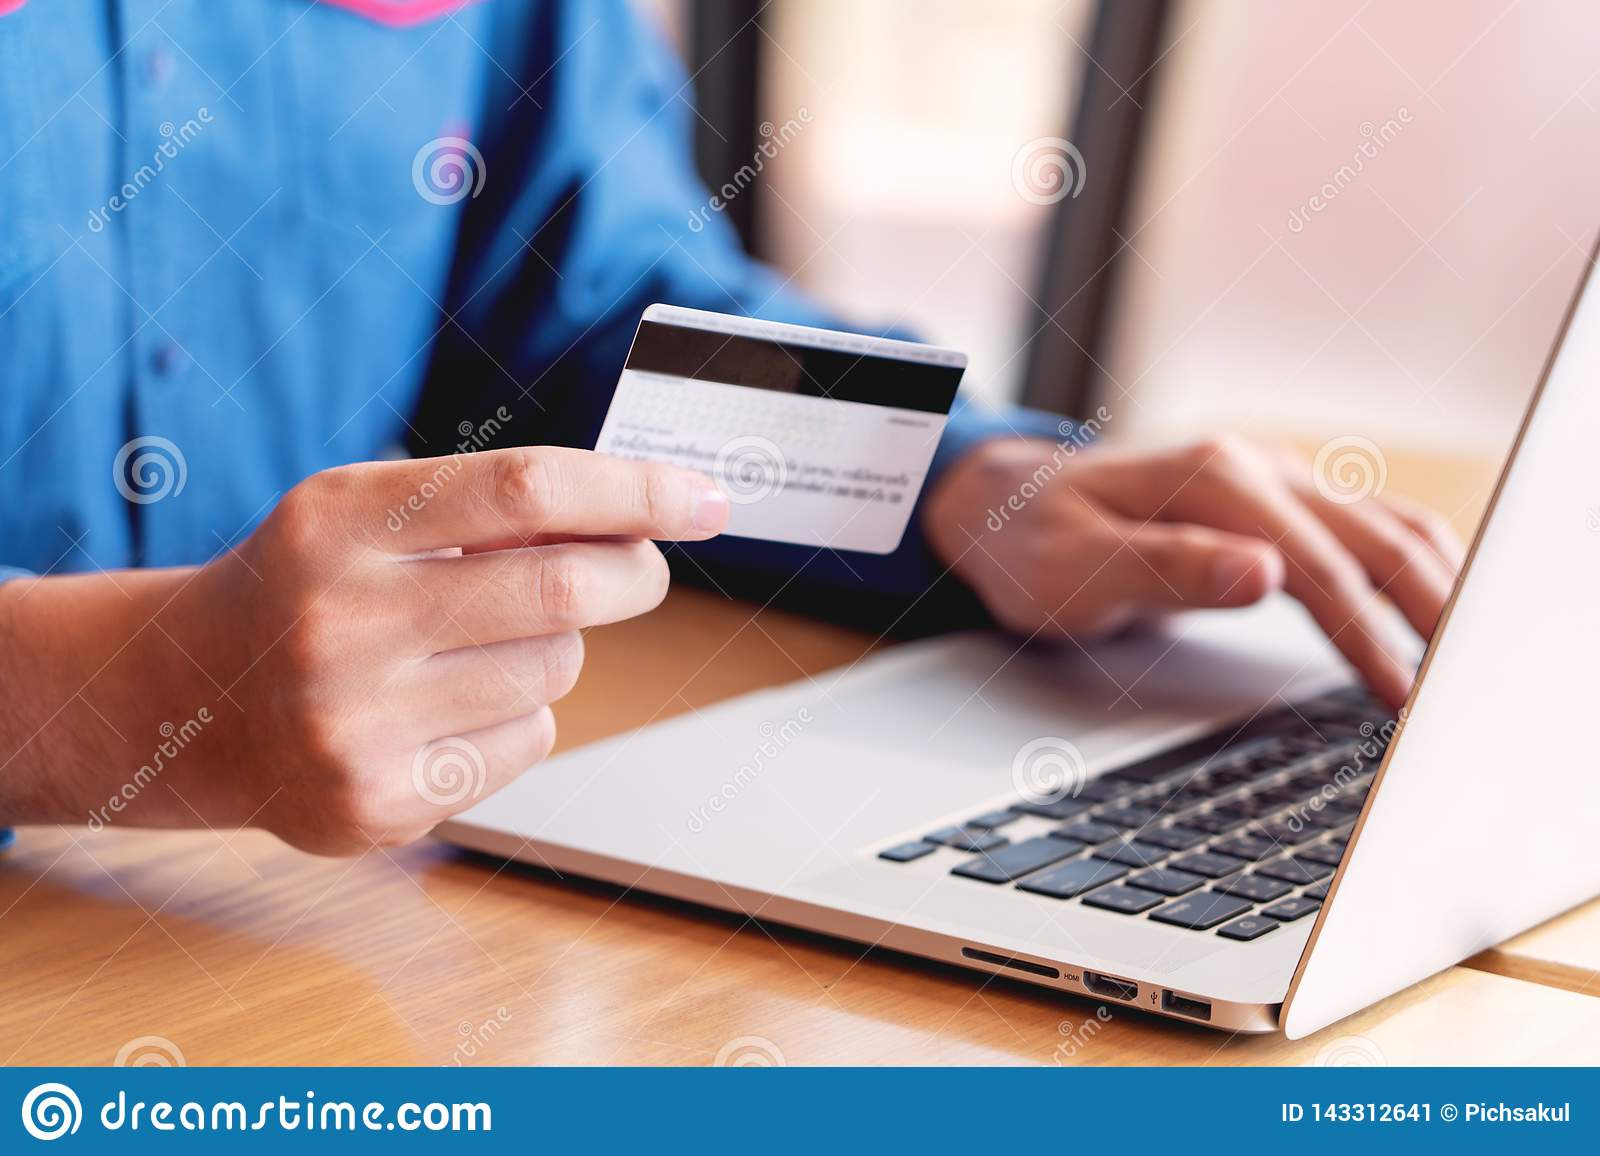 Online shopping credit card data security concept, Hands holding credit card and using smart phone or laptop to shopping or making